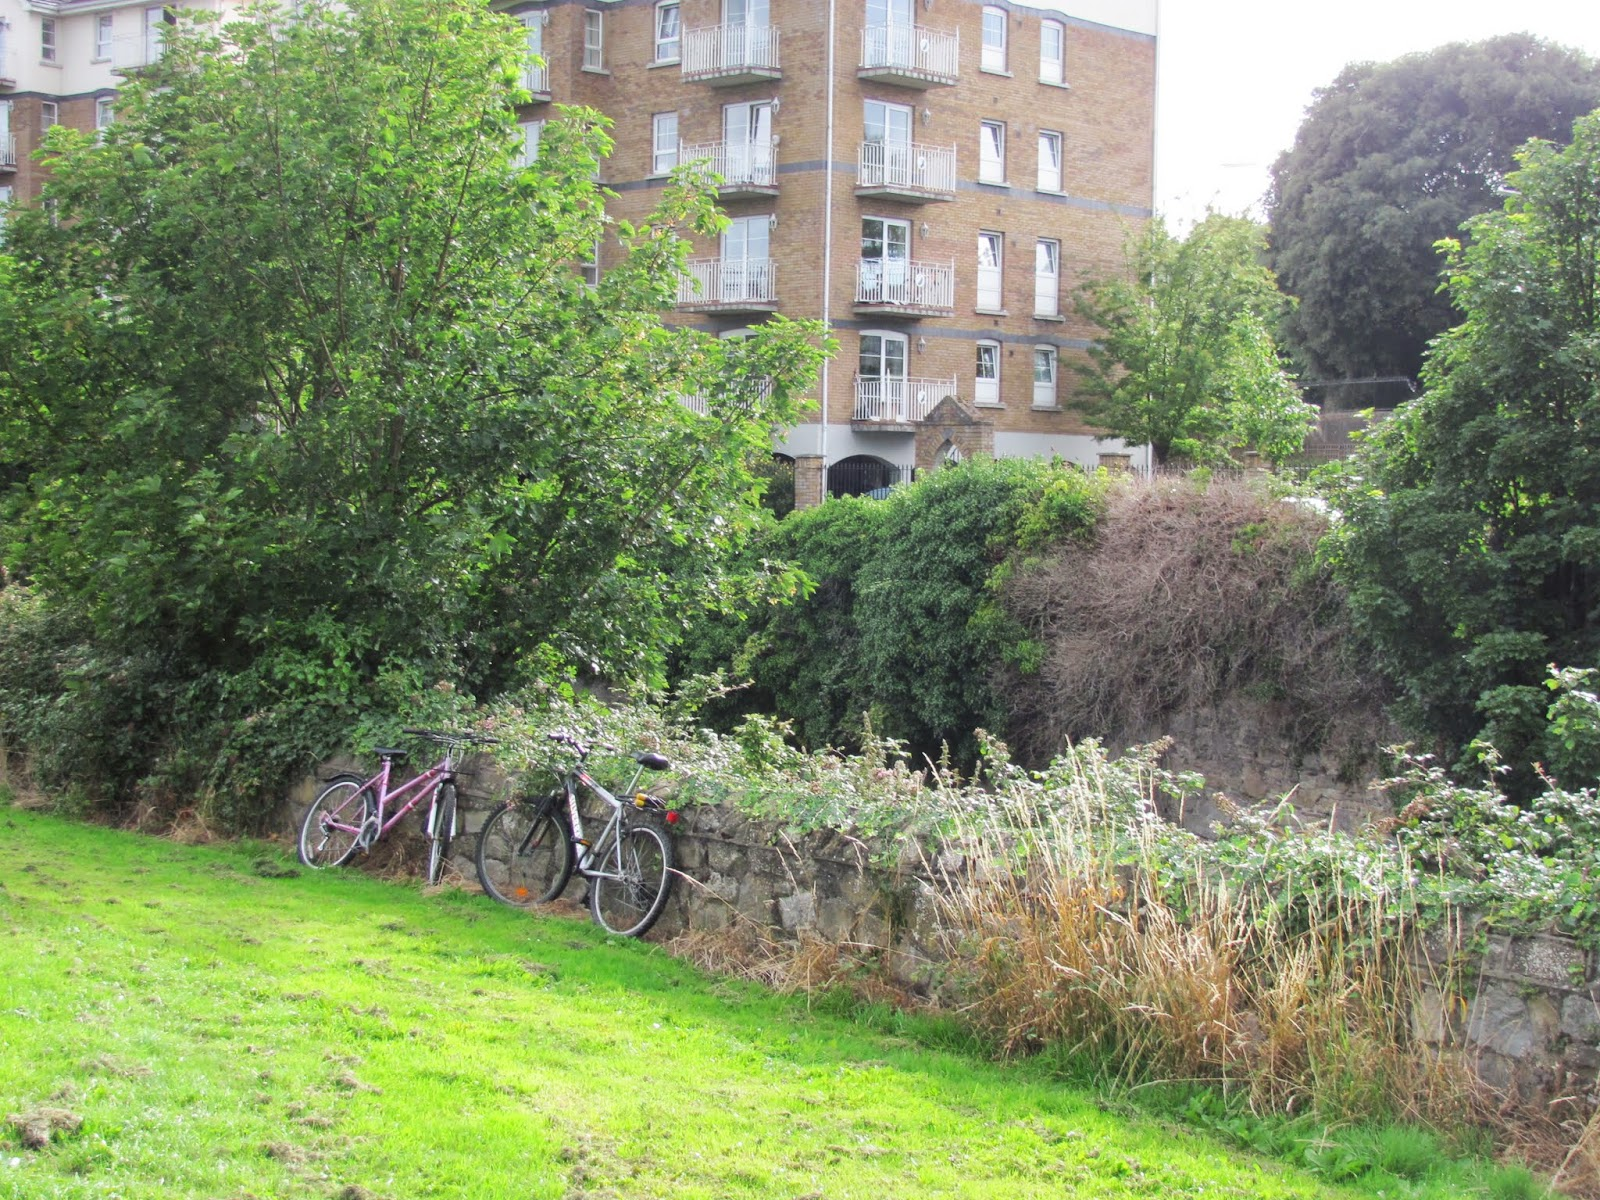 Two bicycles are parked leaning against a stone wall along the River Dodder in Dublin, Ireland